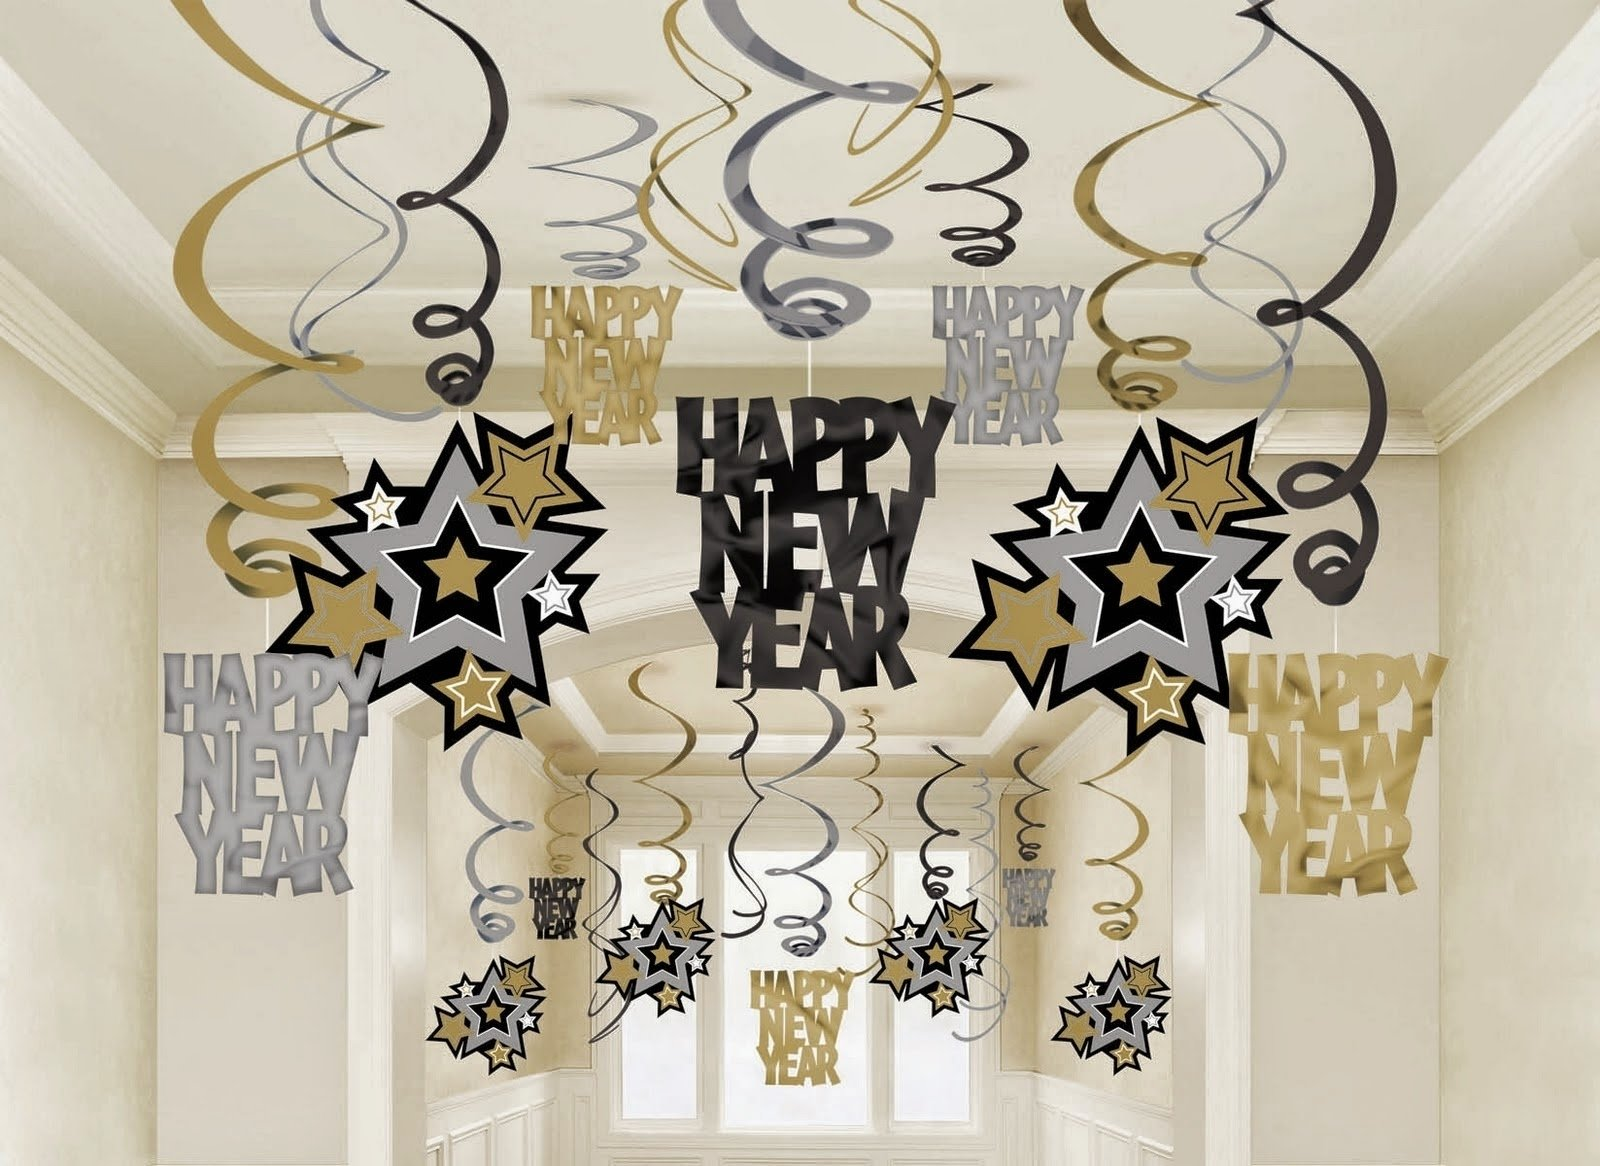 10 Pretty New Years Eve Decorations Ideas new years eve home party decorating ideas paris design agenda 3 2020